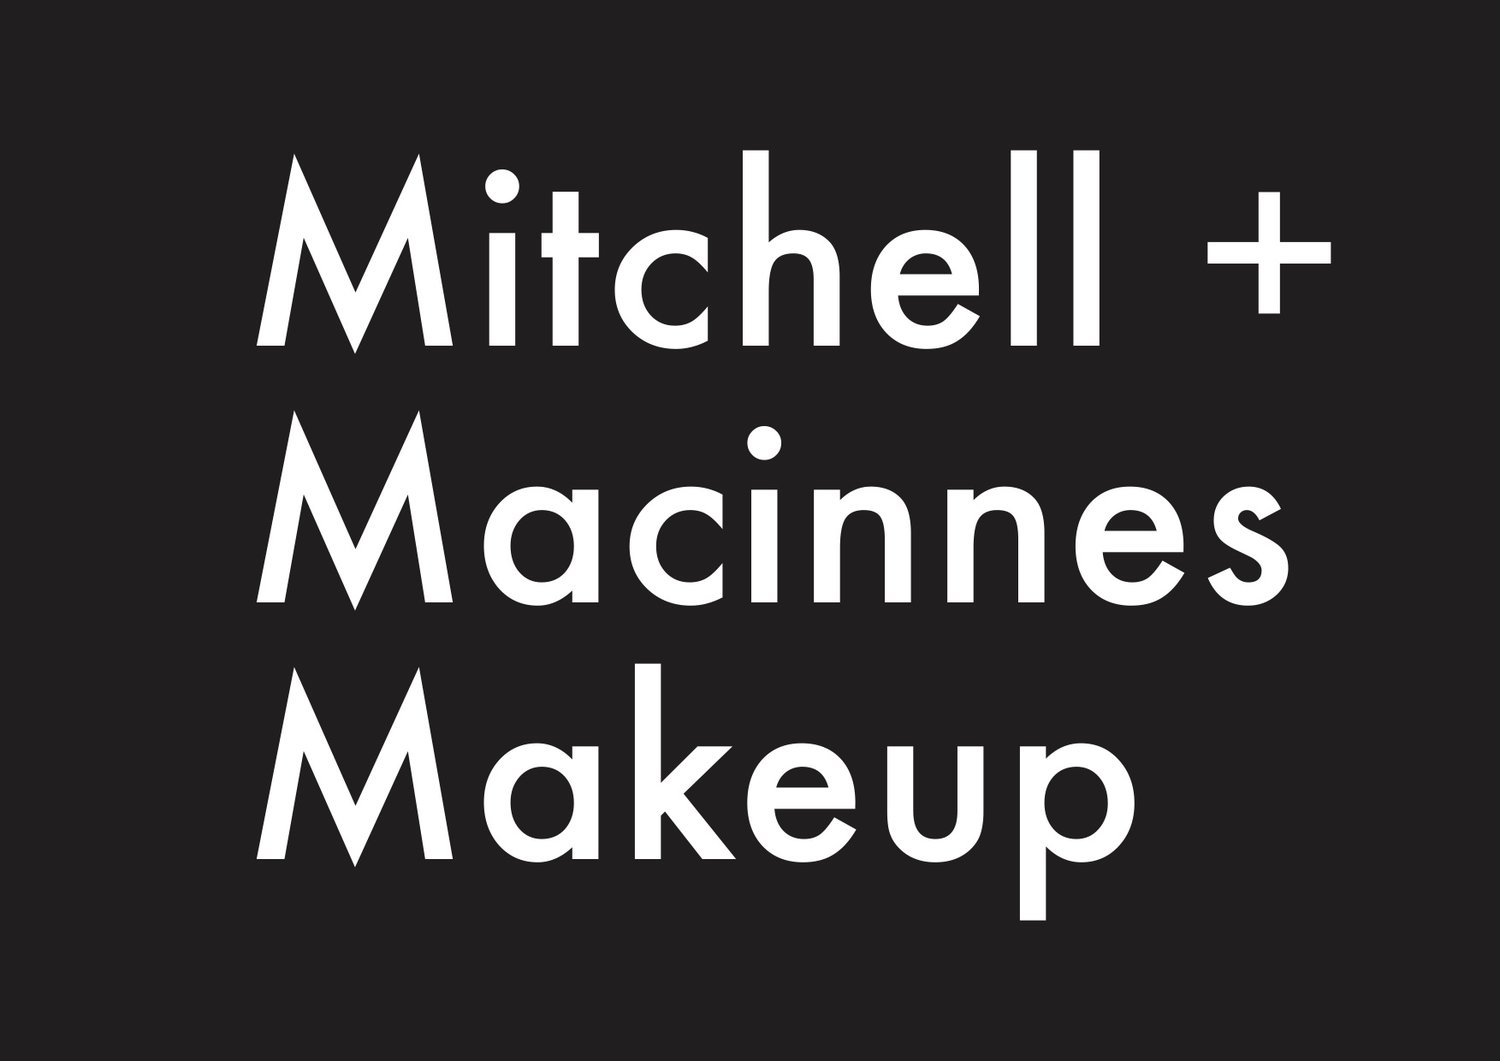 Mitchell & Macinnes Makeup